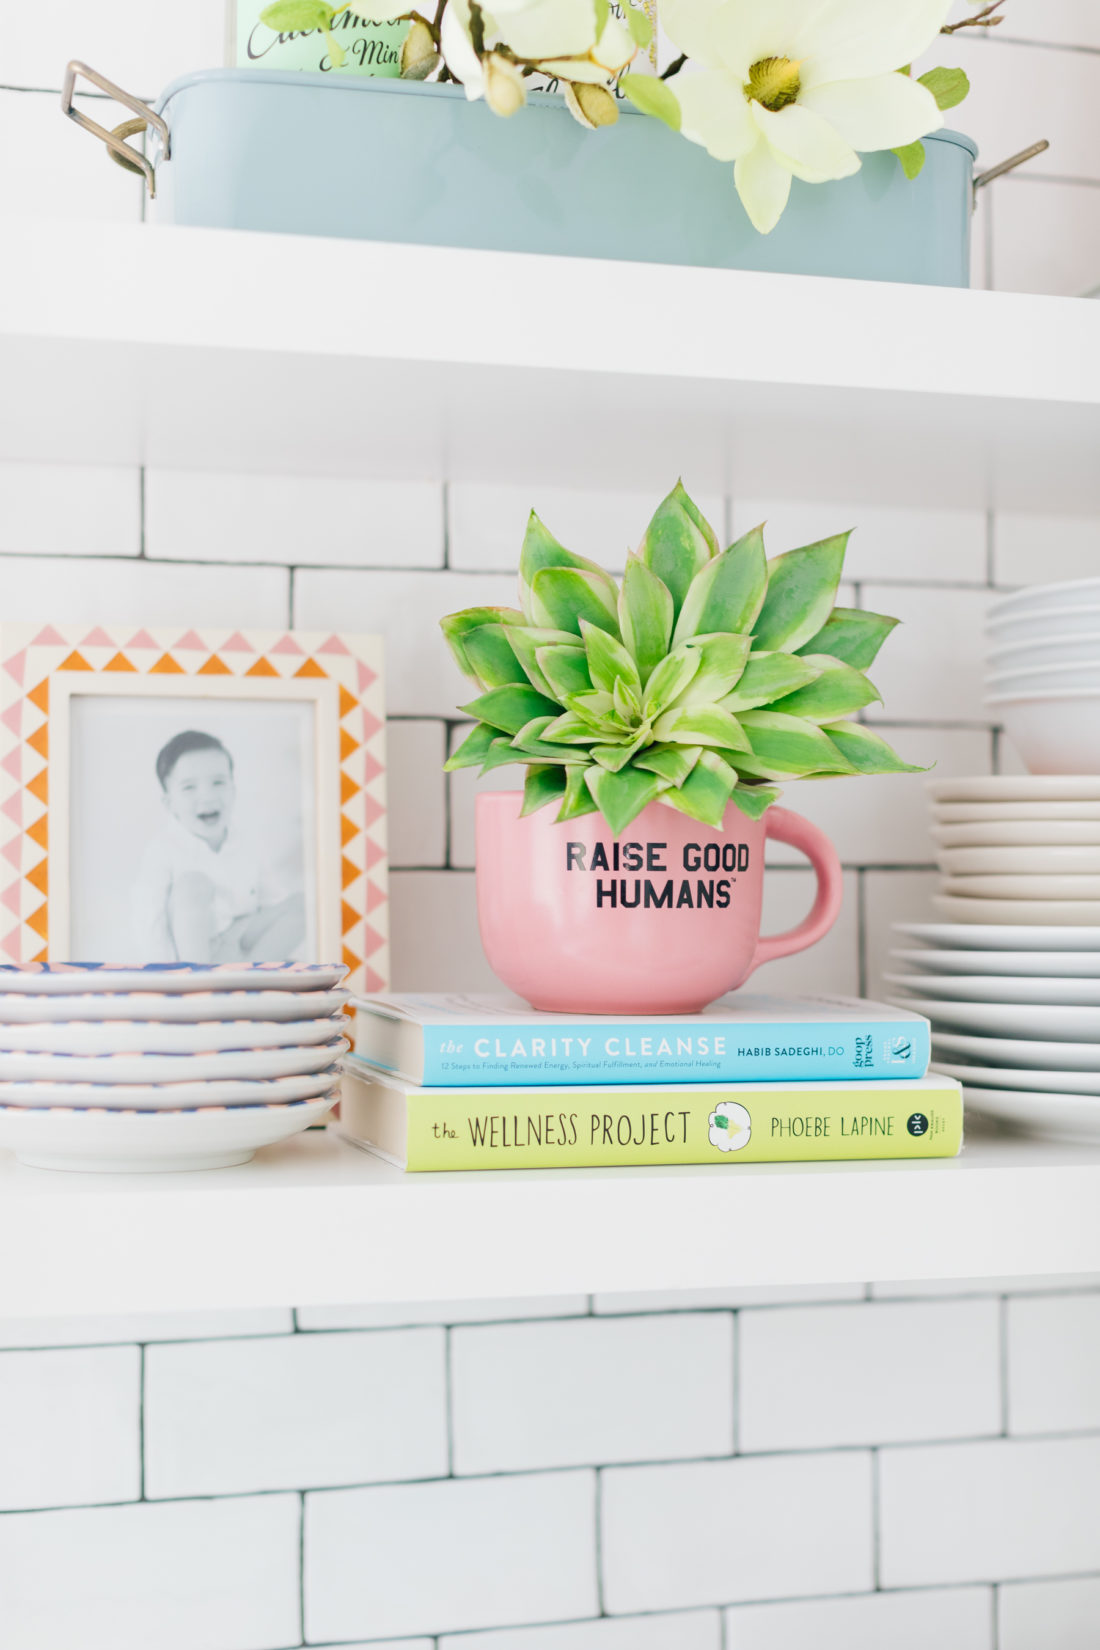 Details on the kitchen shelves in the Happily Eva After Studio